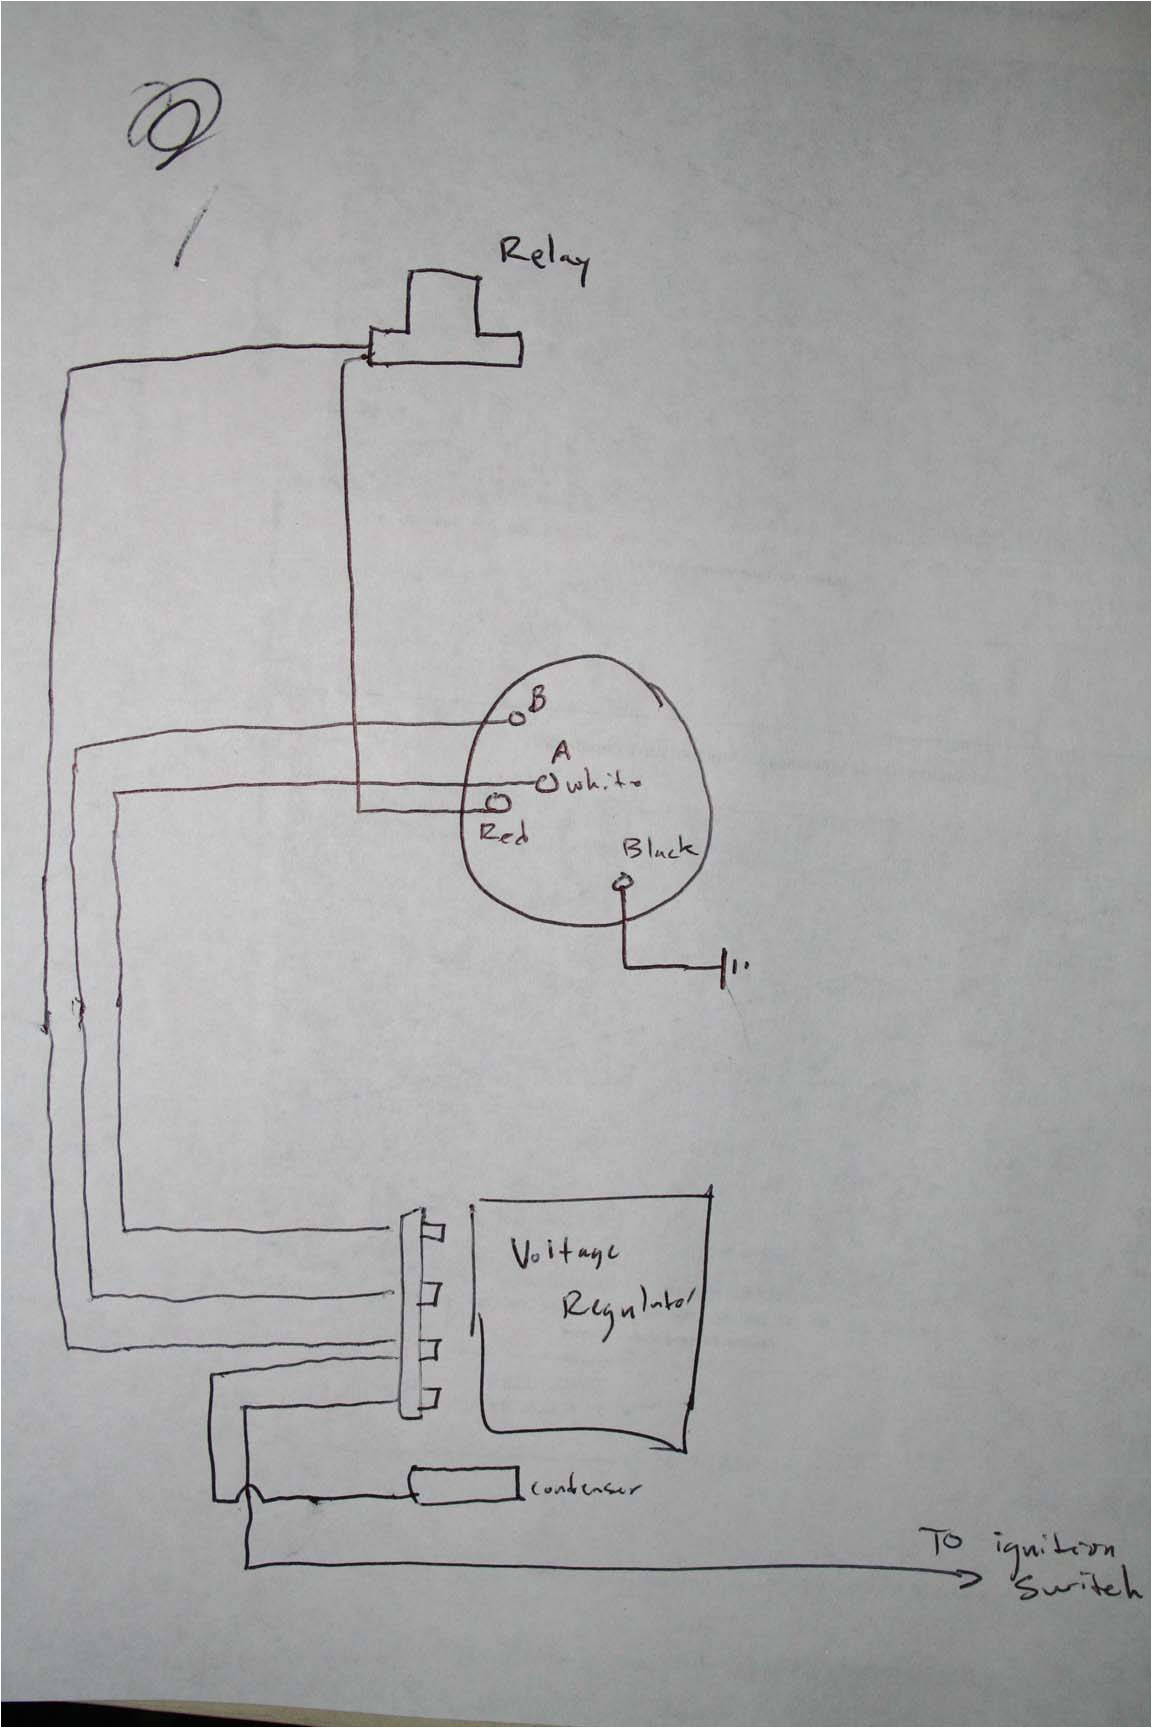 161545d1344372422 voltage regulator alt wiring 67 coupe have wire im not sure what do charging system diagram jpg